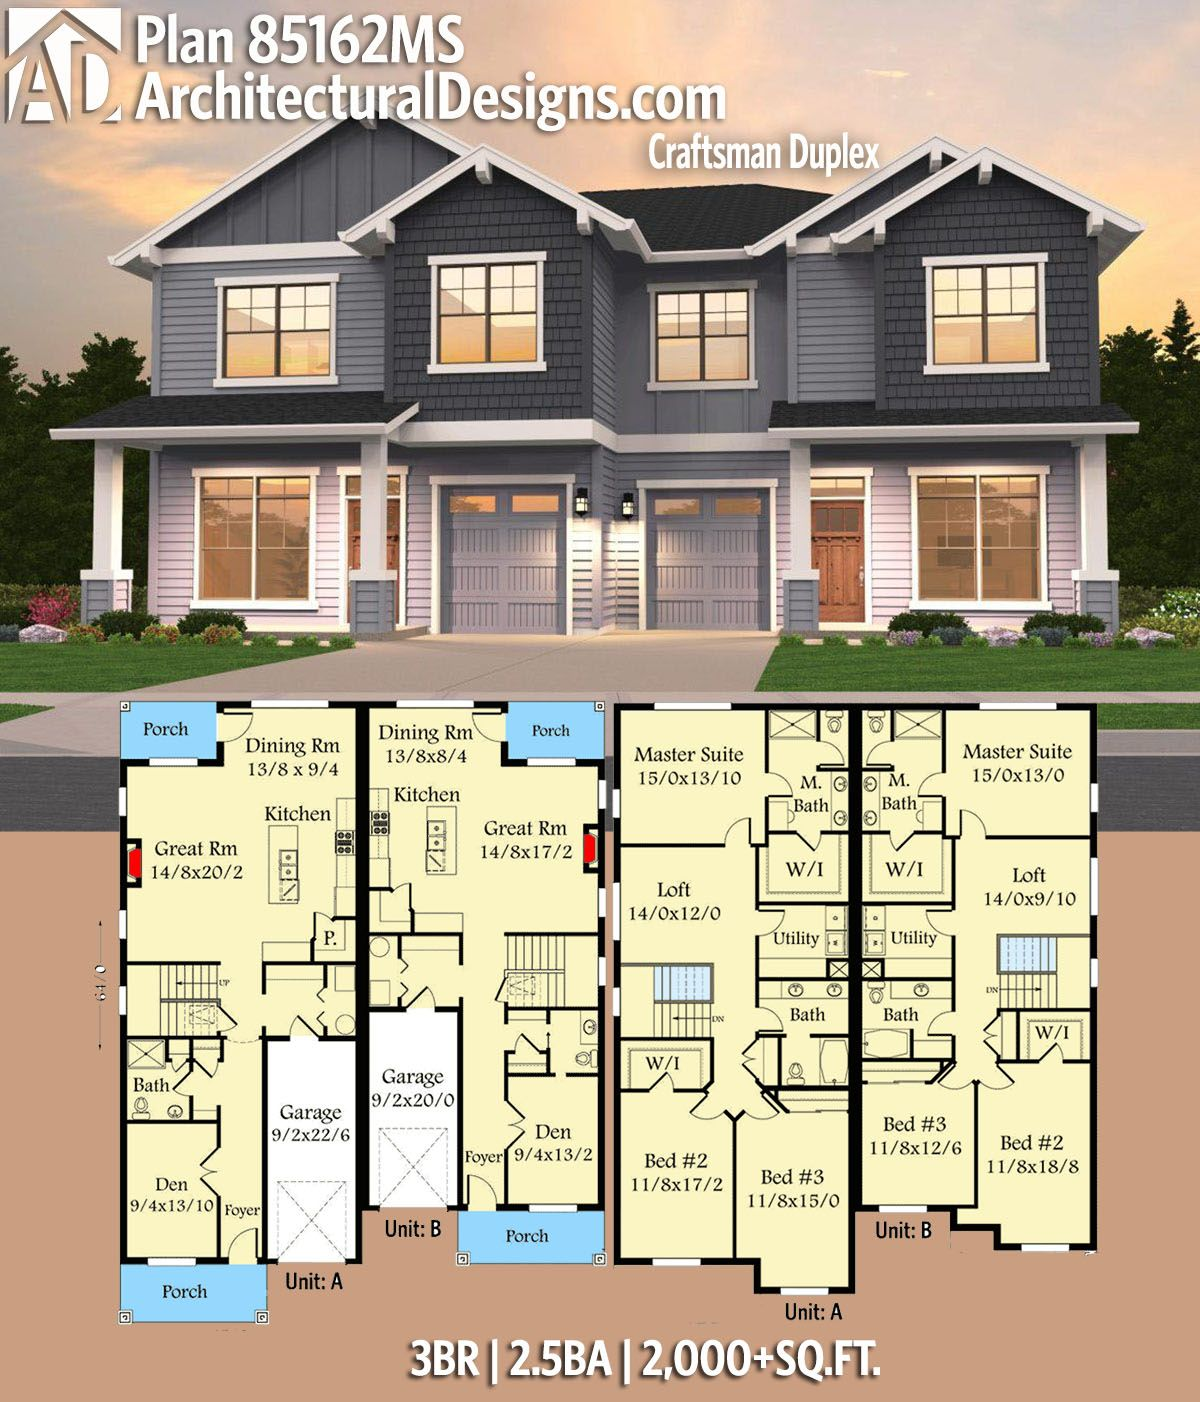 Condos For Rent With Garage: Plan 85162MS: Craftsman Duplex In 2019